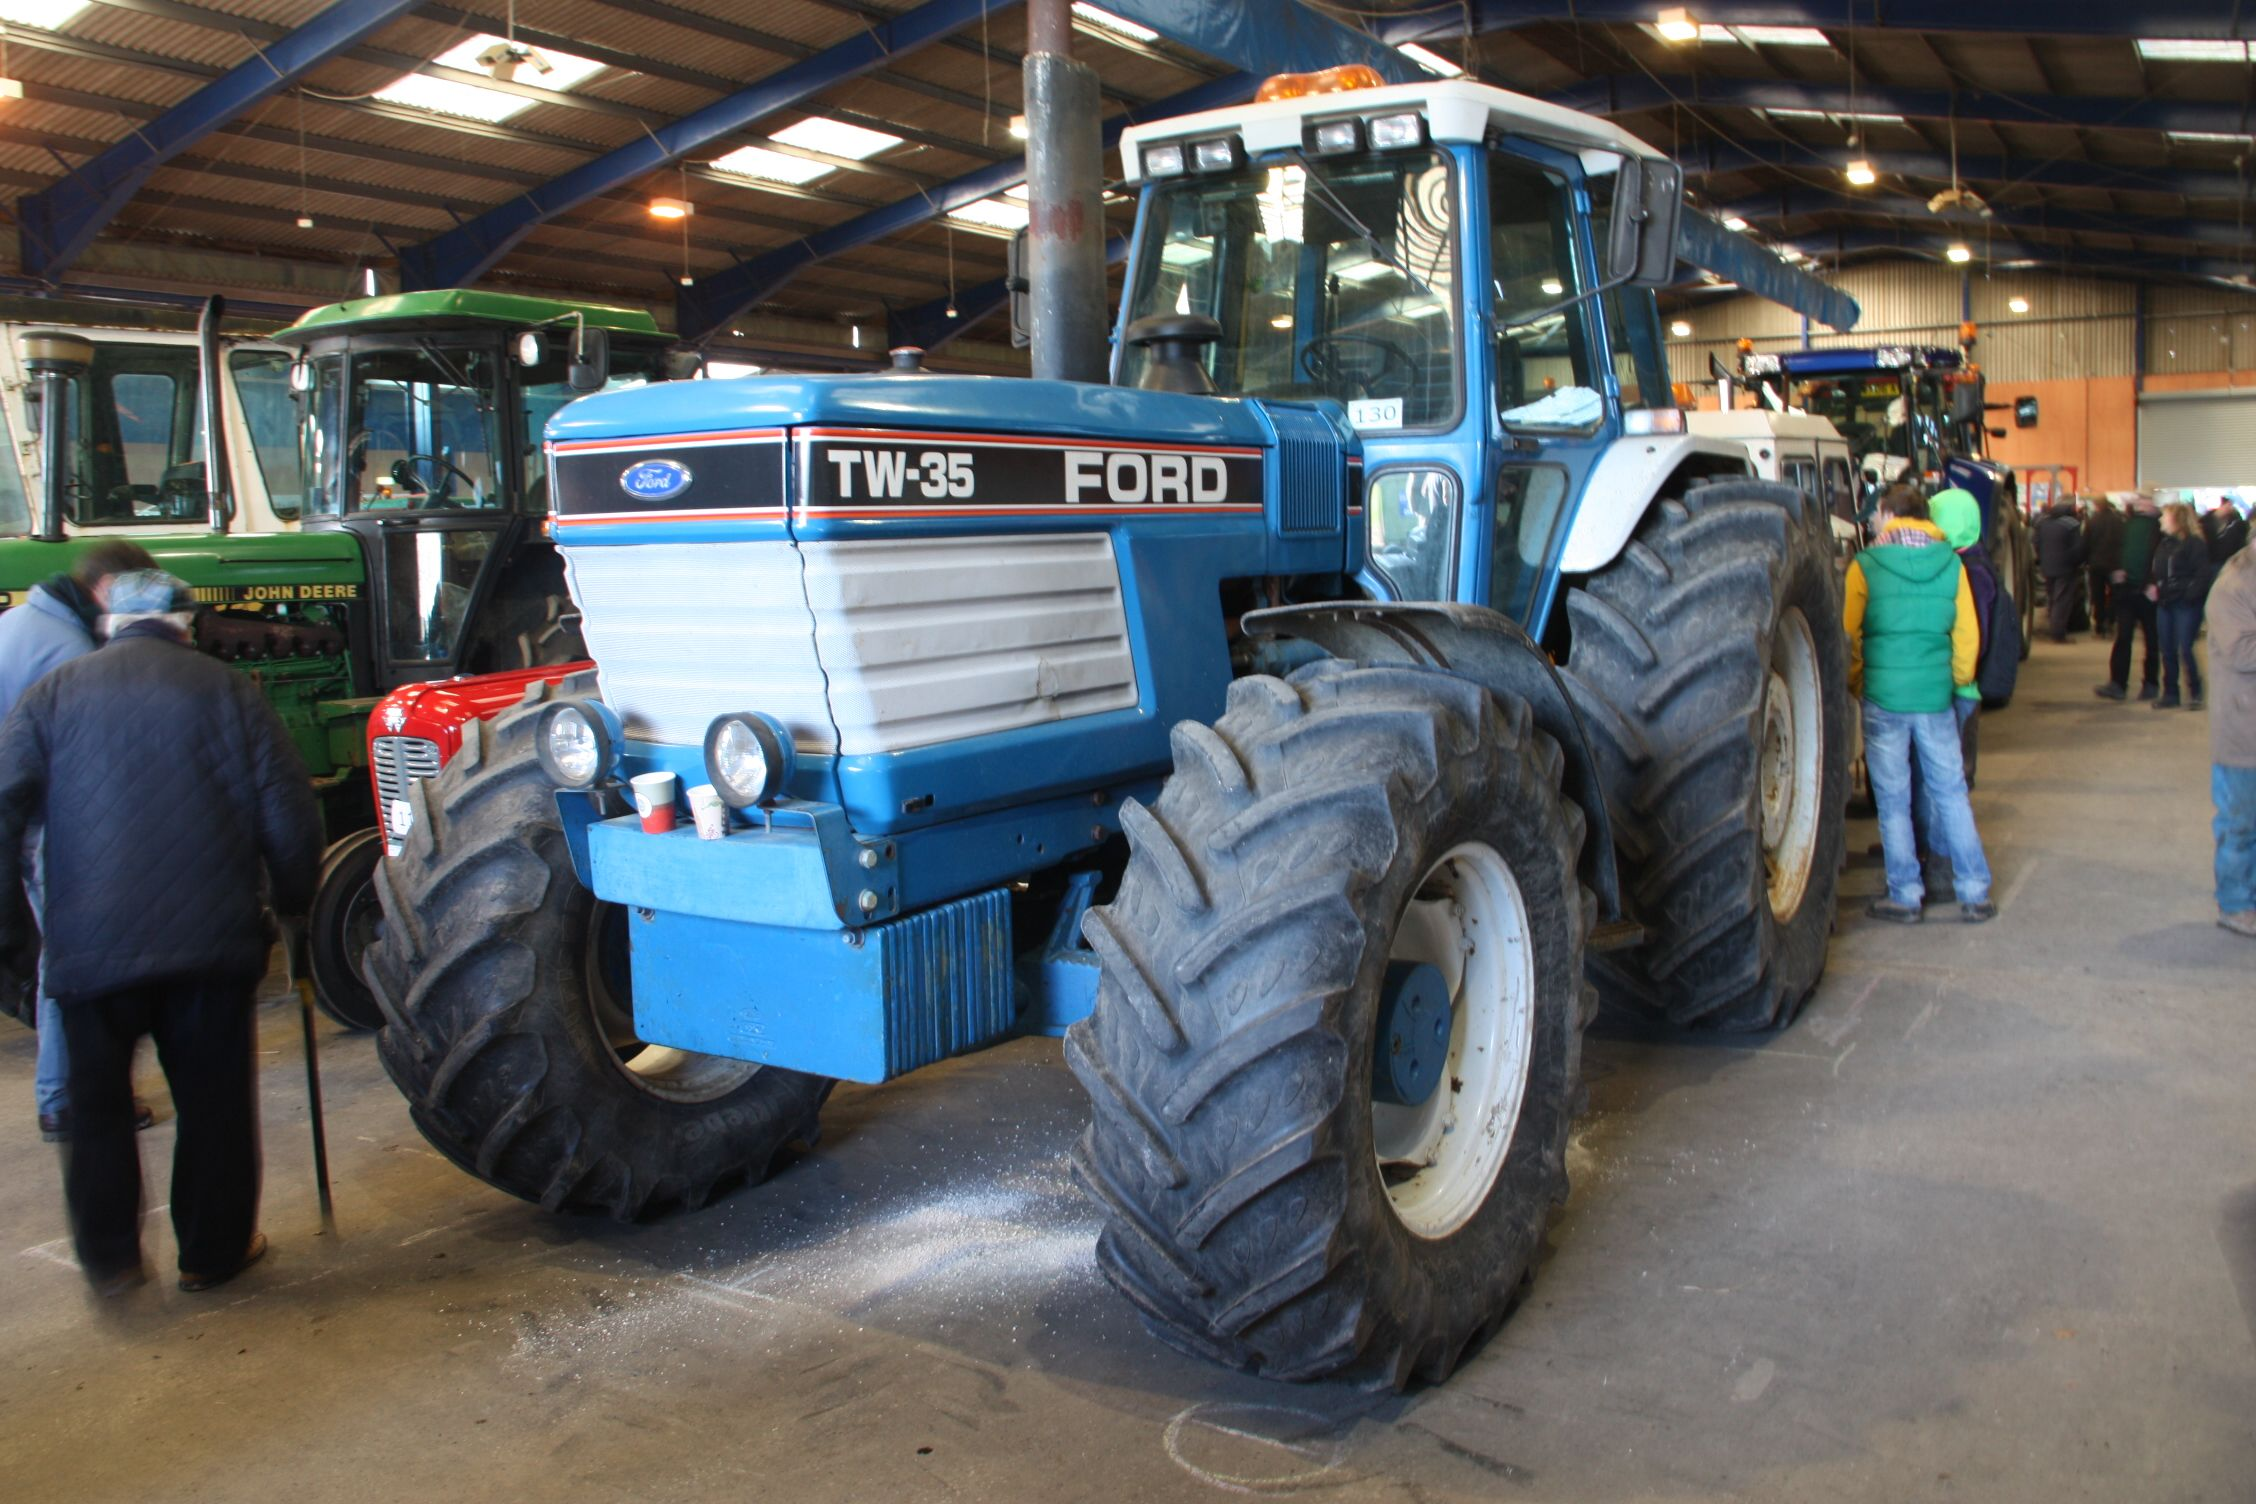 Ford Tw 35 Tractor Mania Pinterest Tractors 7740 Wiring Harness Kits New Holland Heavy Machinery Farms Techno